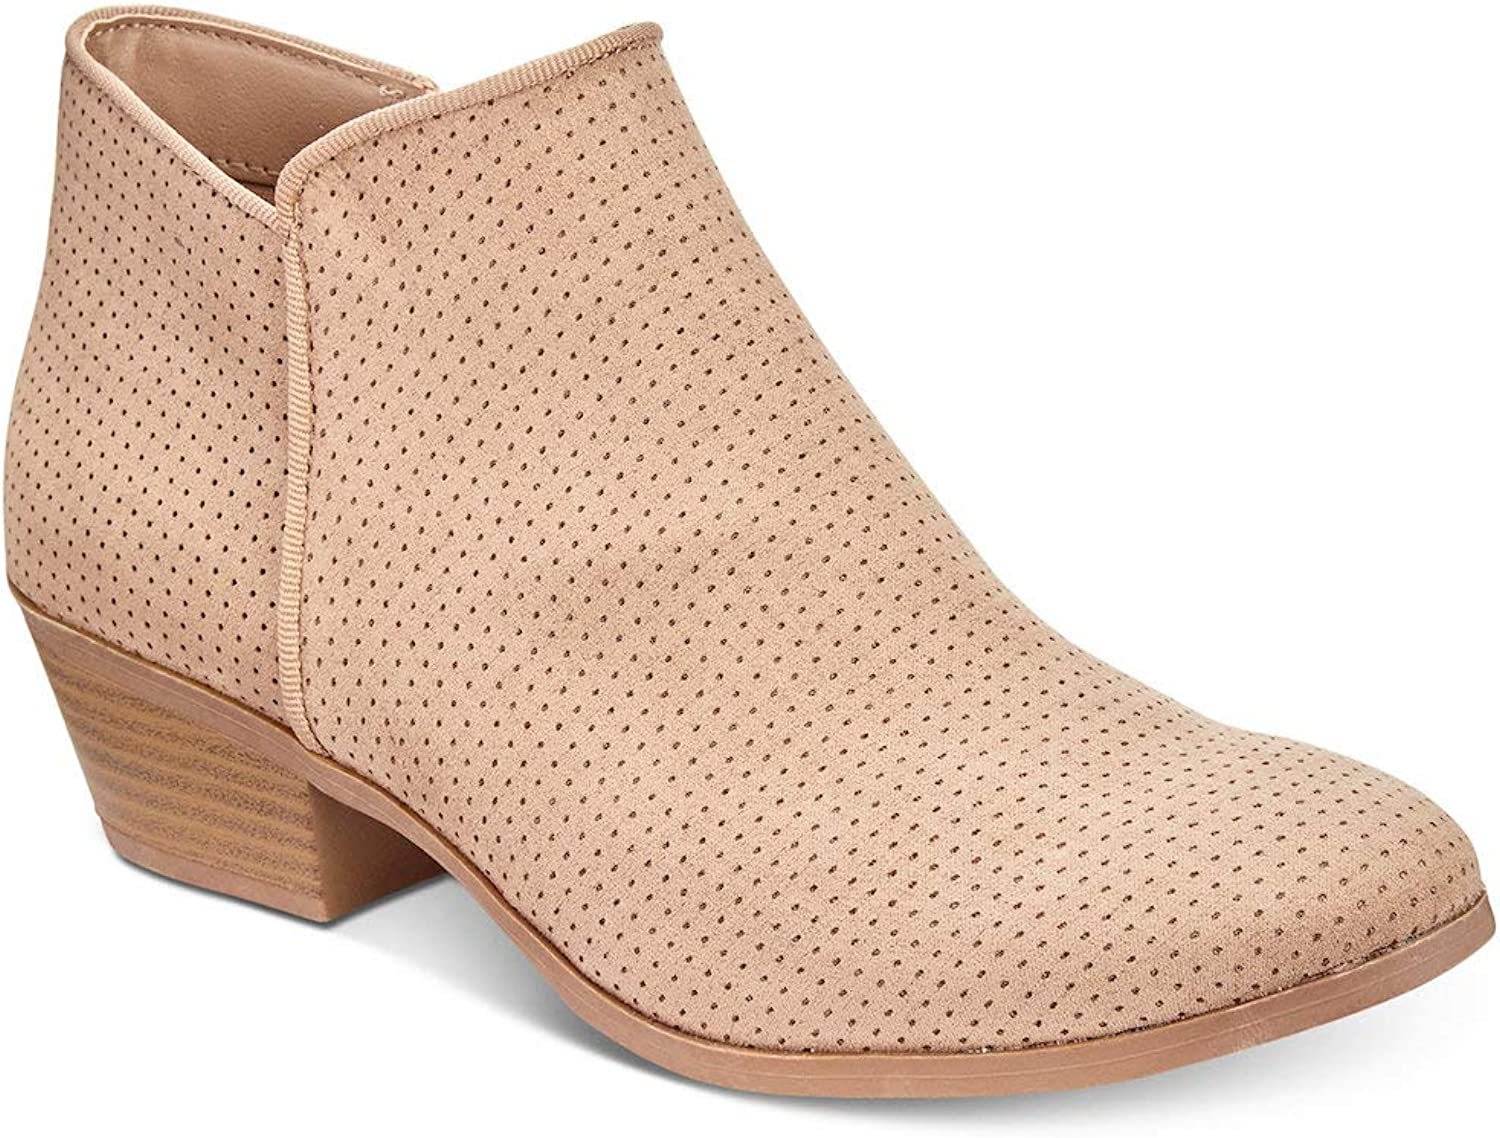 Style & Co. Womens Warrenn Fabric Almond Toe Ankle Fashion Boots